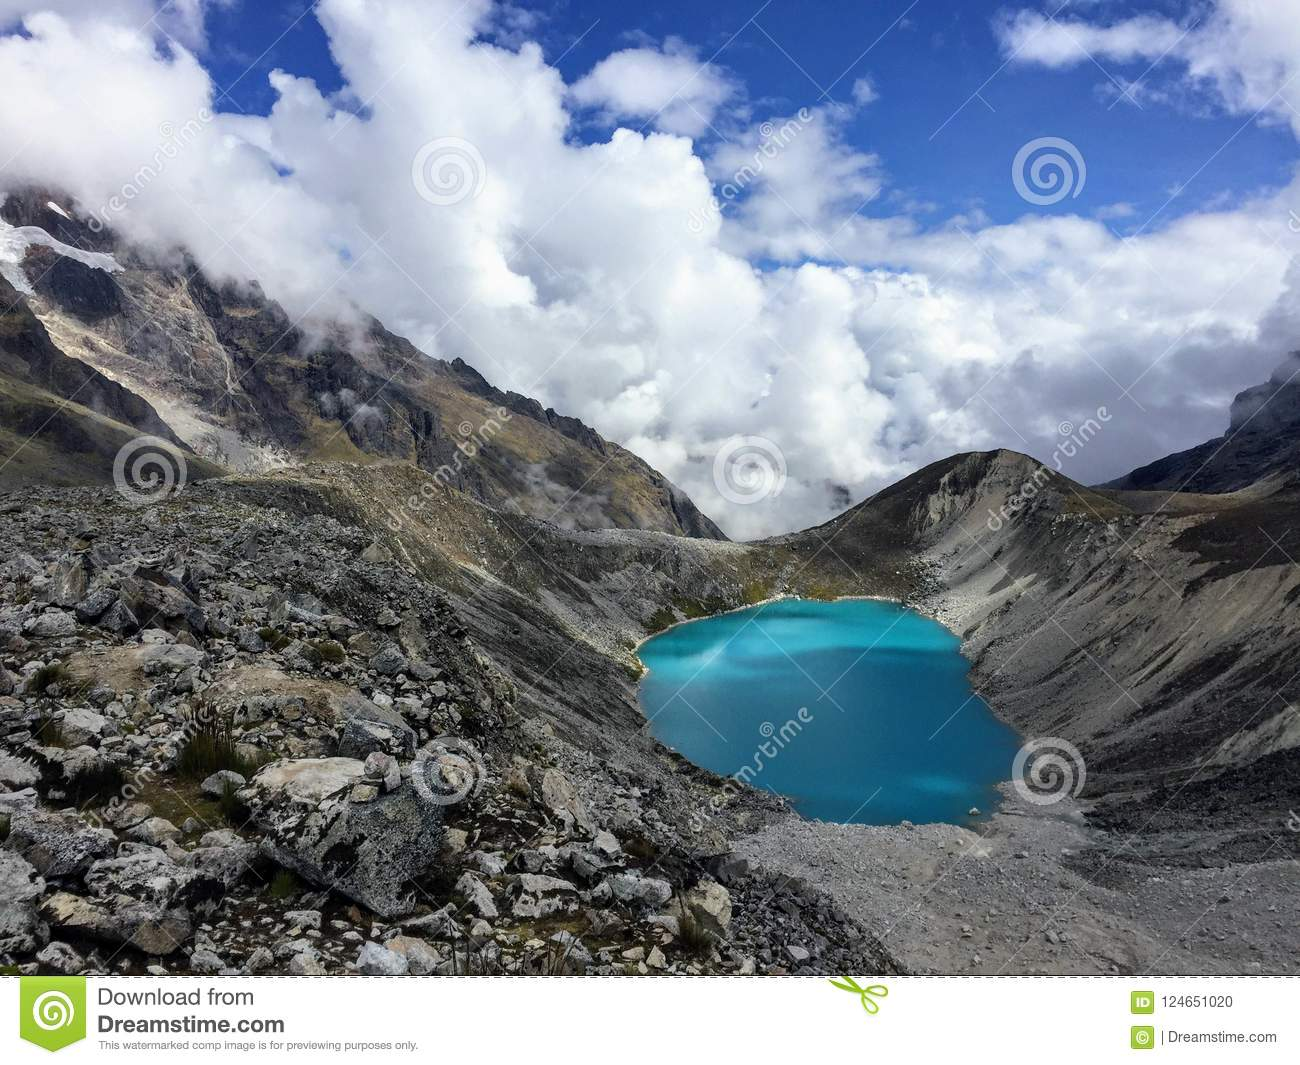 Lake in the sky during hike through the Andes mountains